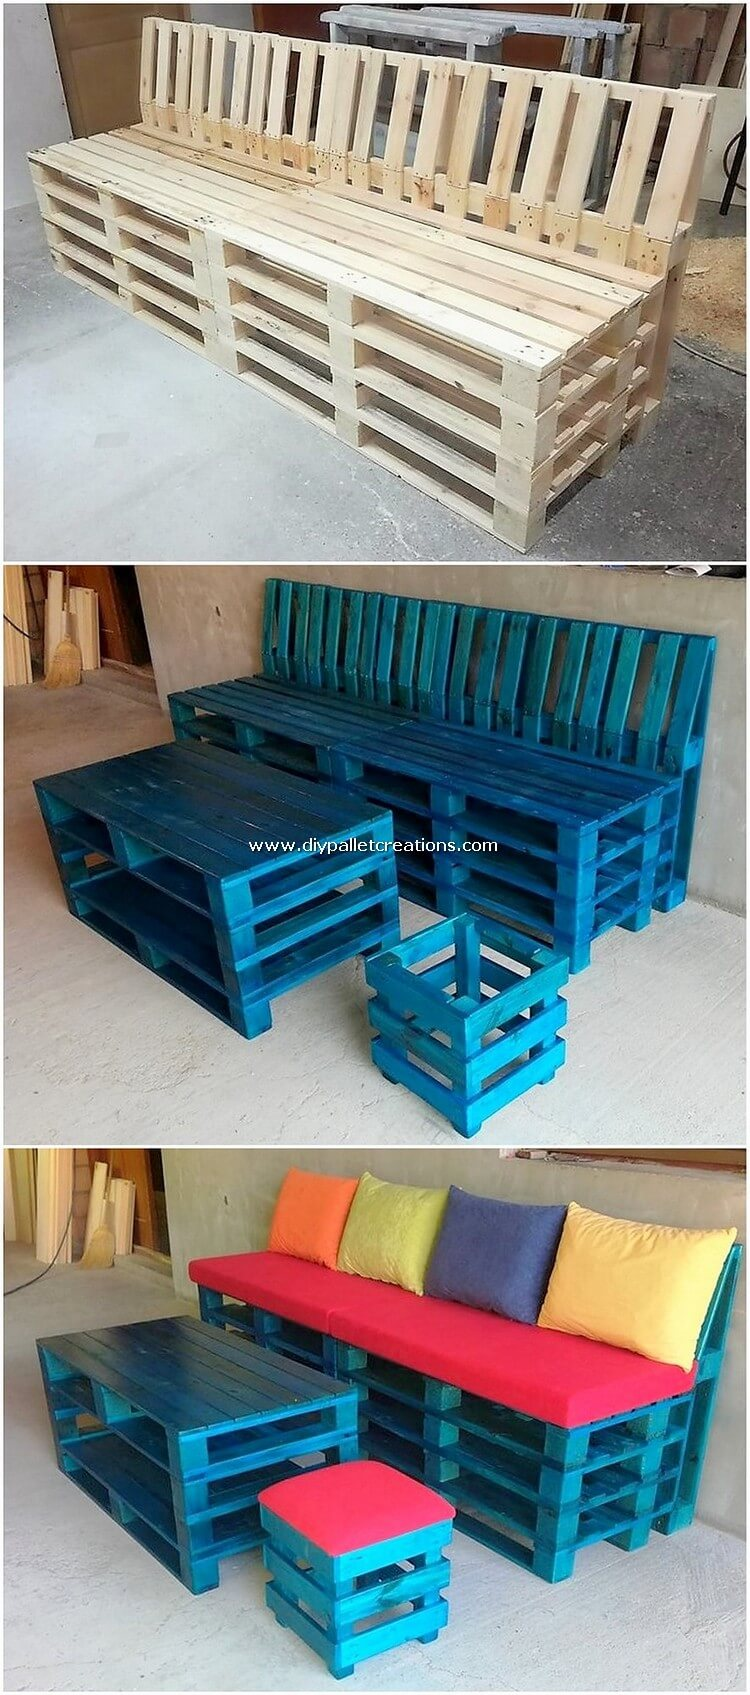 Pallet Bench or Couch and Table